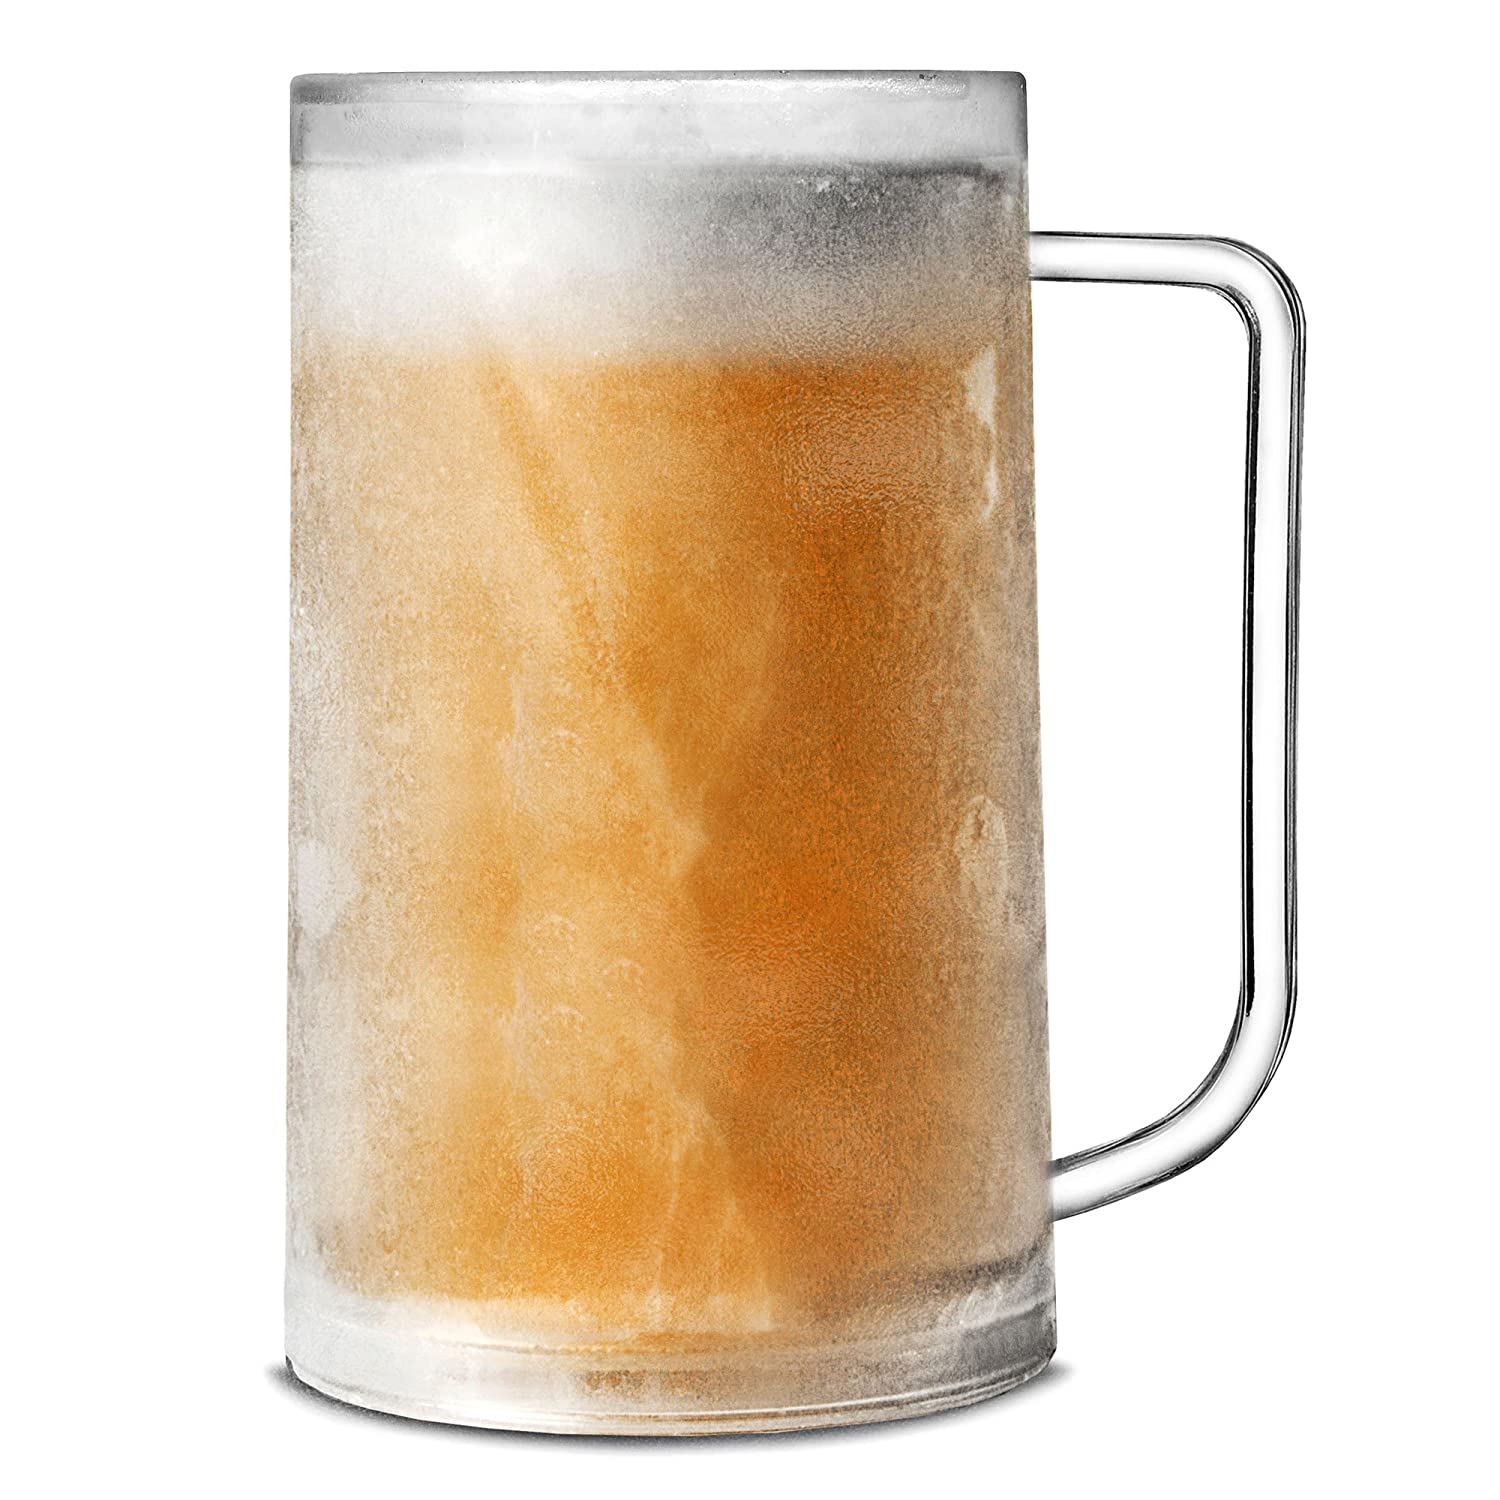 Frosty Mug 14.1oz/400ml by bar@drinkstuff | Plastic Freezer Mug, Beer Mug, Beer Stein, Beer Tankard | Freezable Beer Tankard